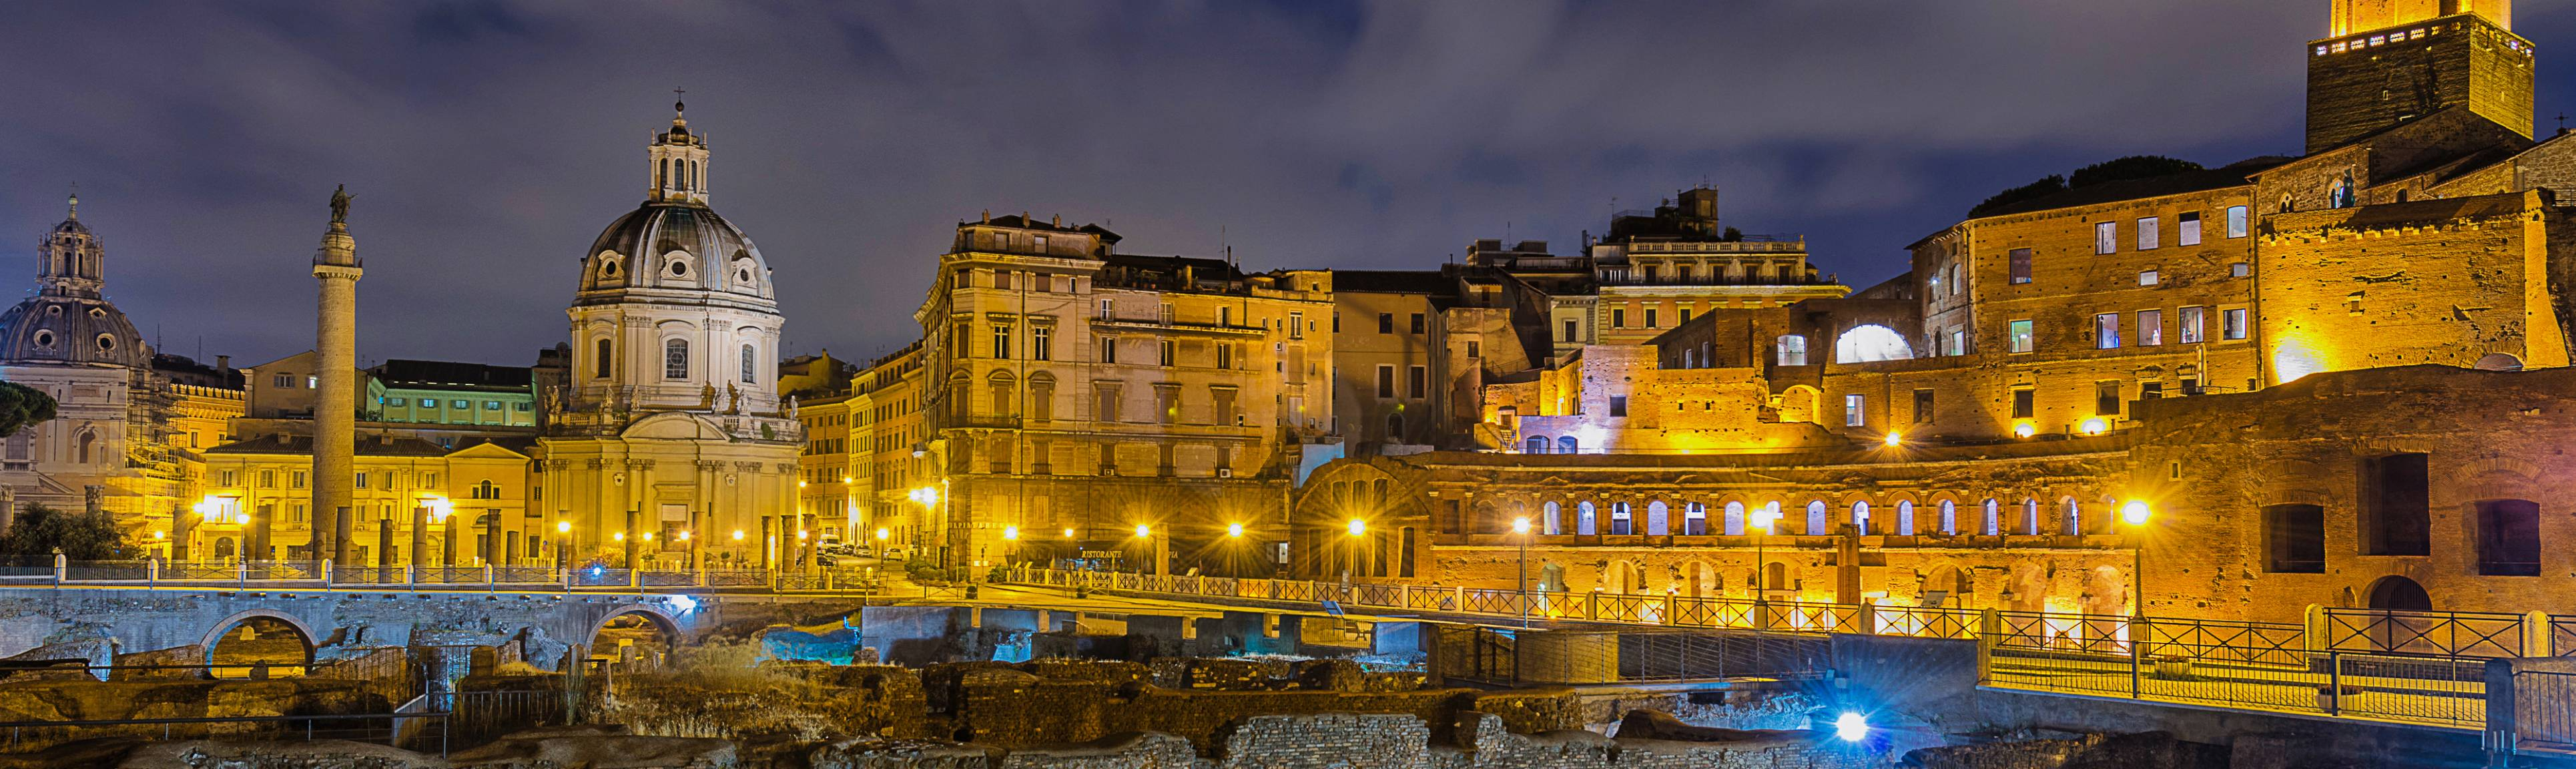 Illuminated view of the ancient Roman Forum